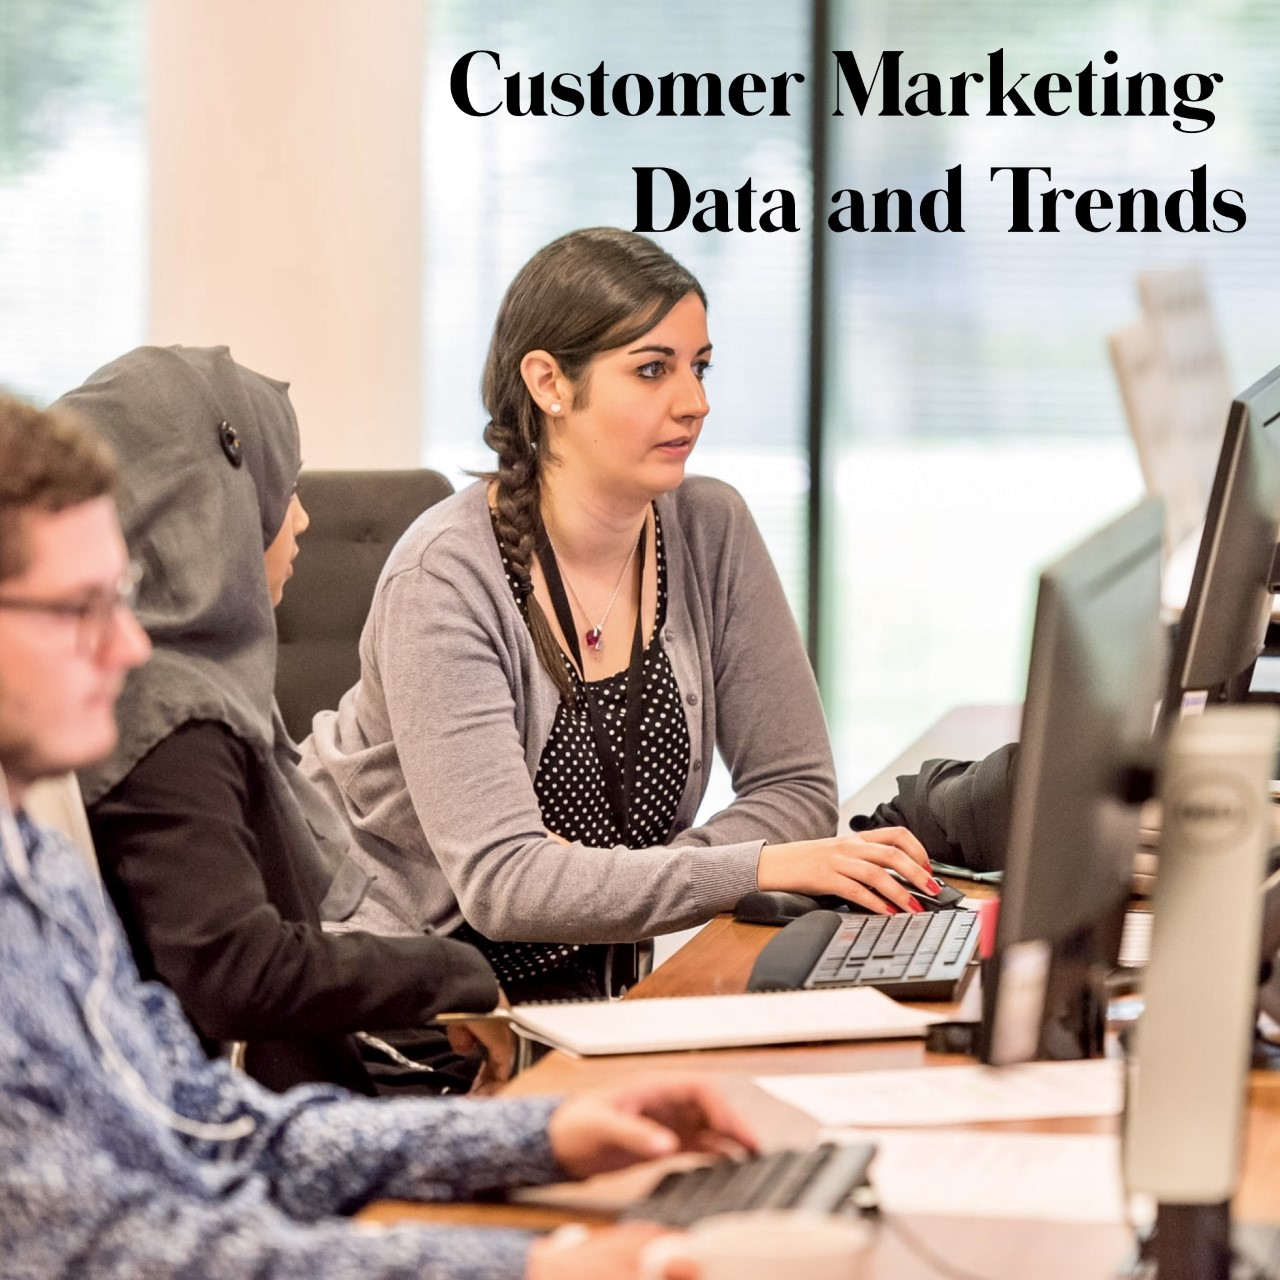 Customer Data and Trends